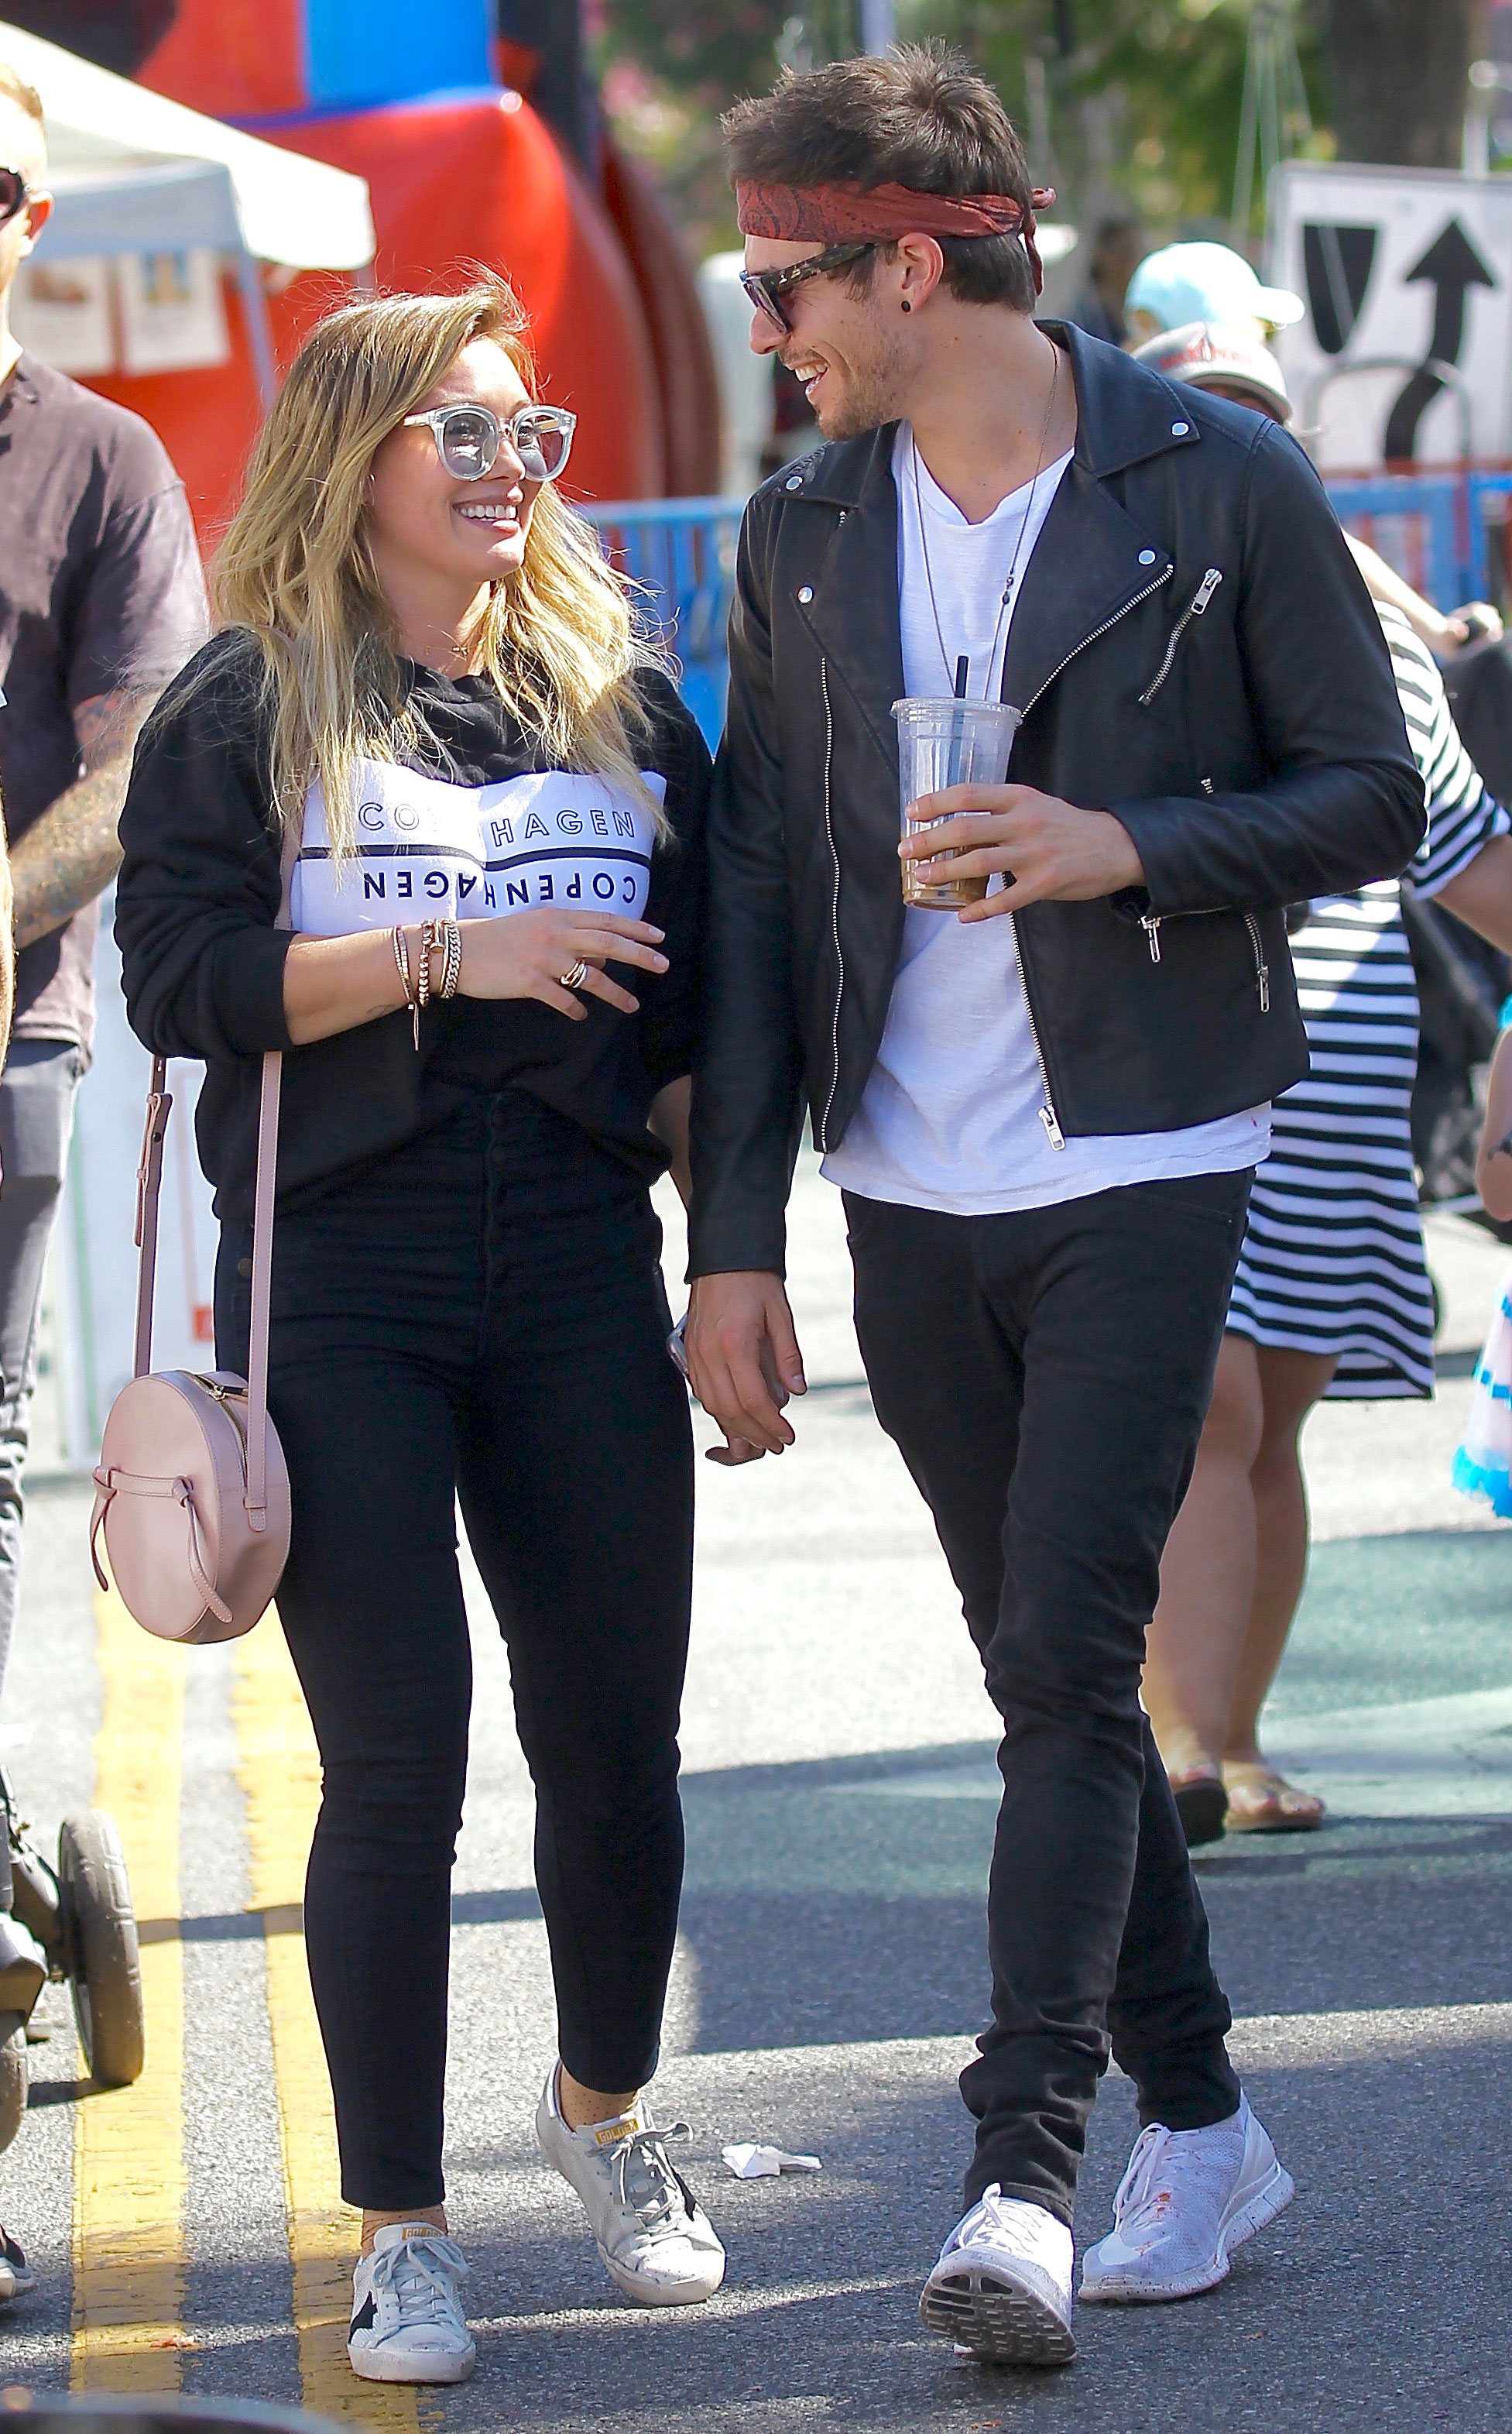 """Hilary Duff and Matthew Koma: A Timeline of Their Relationship - The two rekindled their romance and the Raise Your Voice star started sharing photos of them together on Instagram again. She later opened up about their relationship, telling Us Weekly in December that """"it's going so great."""""""